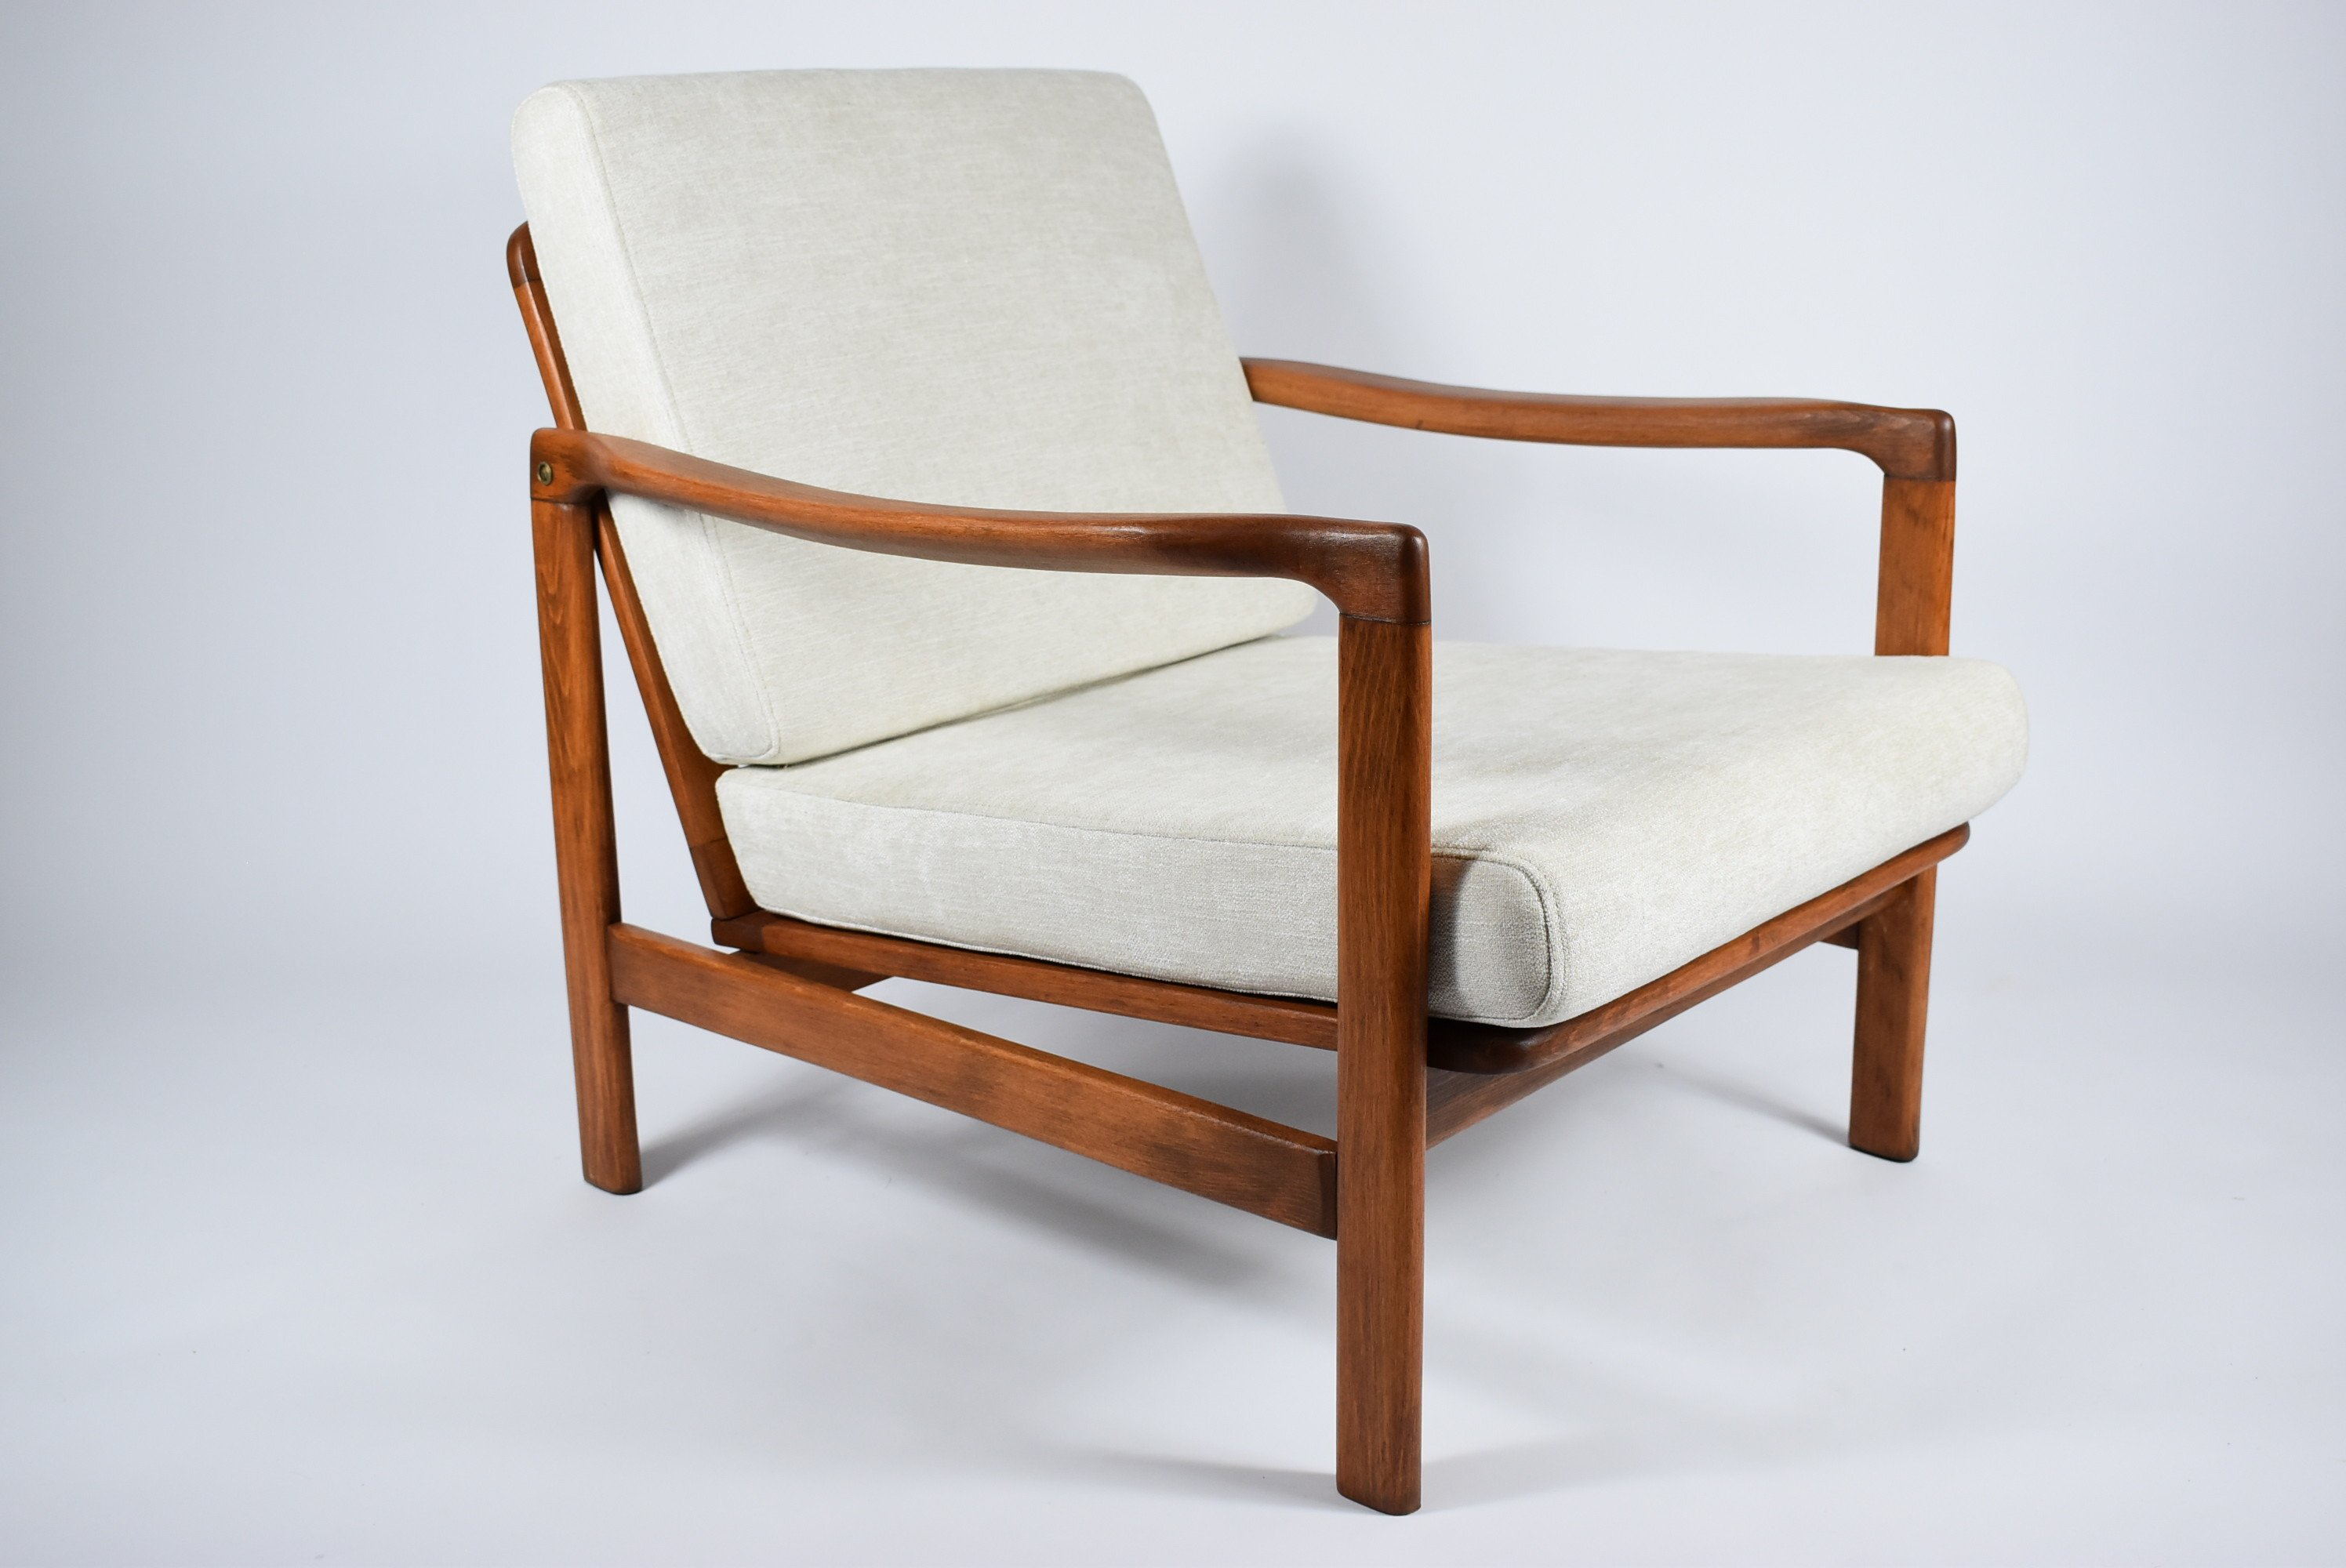 Armchair by Z. Bączyk for Swarzędzka Fabryka Mebli, Poland, 1960s - 473708 - photo